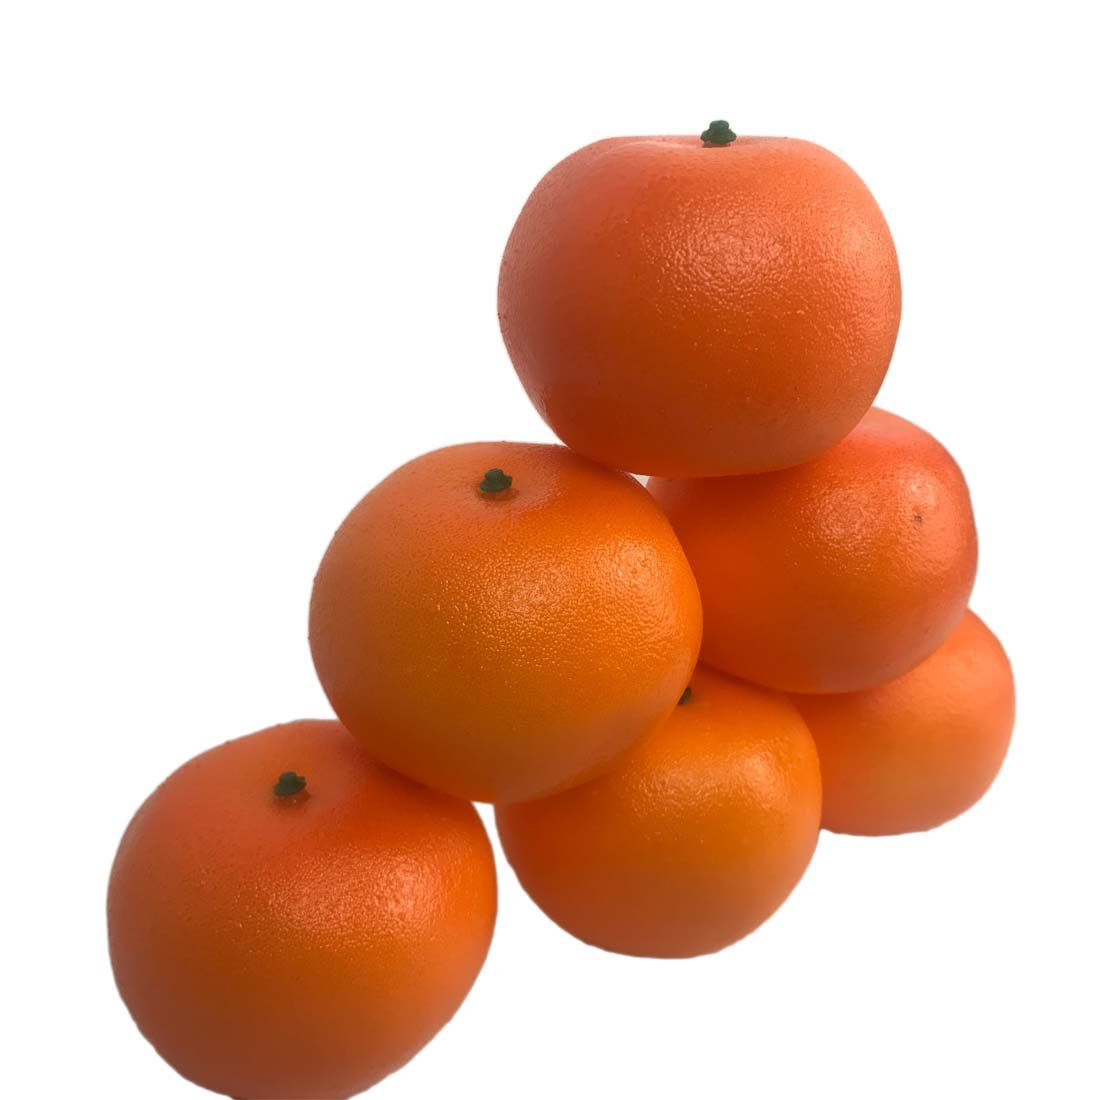 6 Pcs Arificial Oranges R/éalistes Mandarines Faux Fruits D/écorations pour La Maison Table De Cuisine Affichage